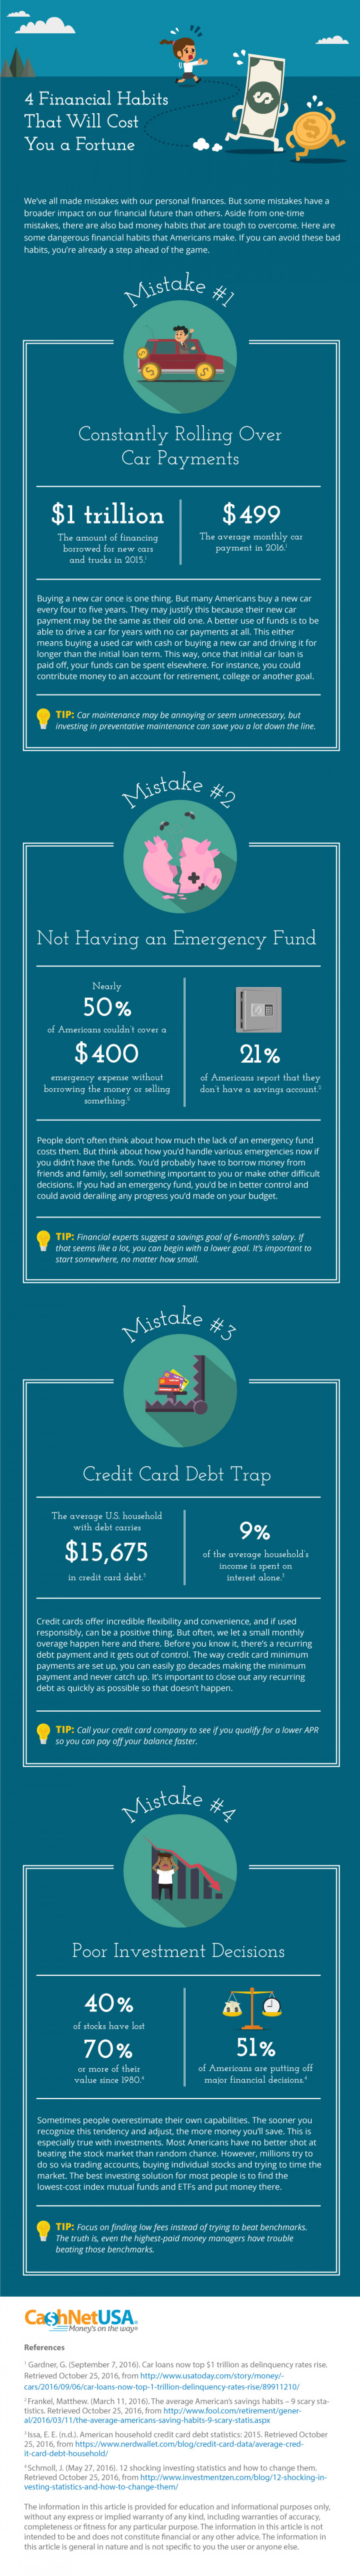 https://www.cashnetusa.com/blog/4-financial-habits-will-cost-fortune/ Infographic